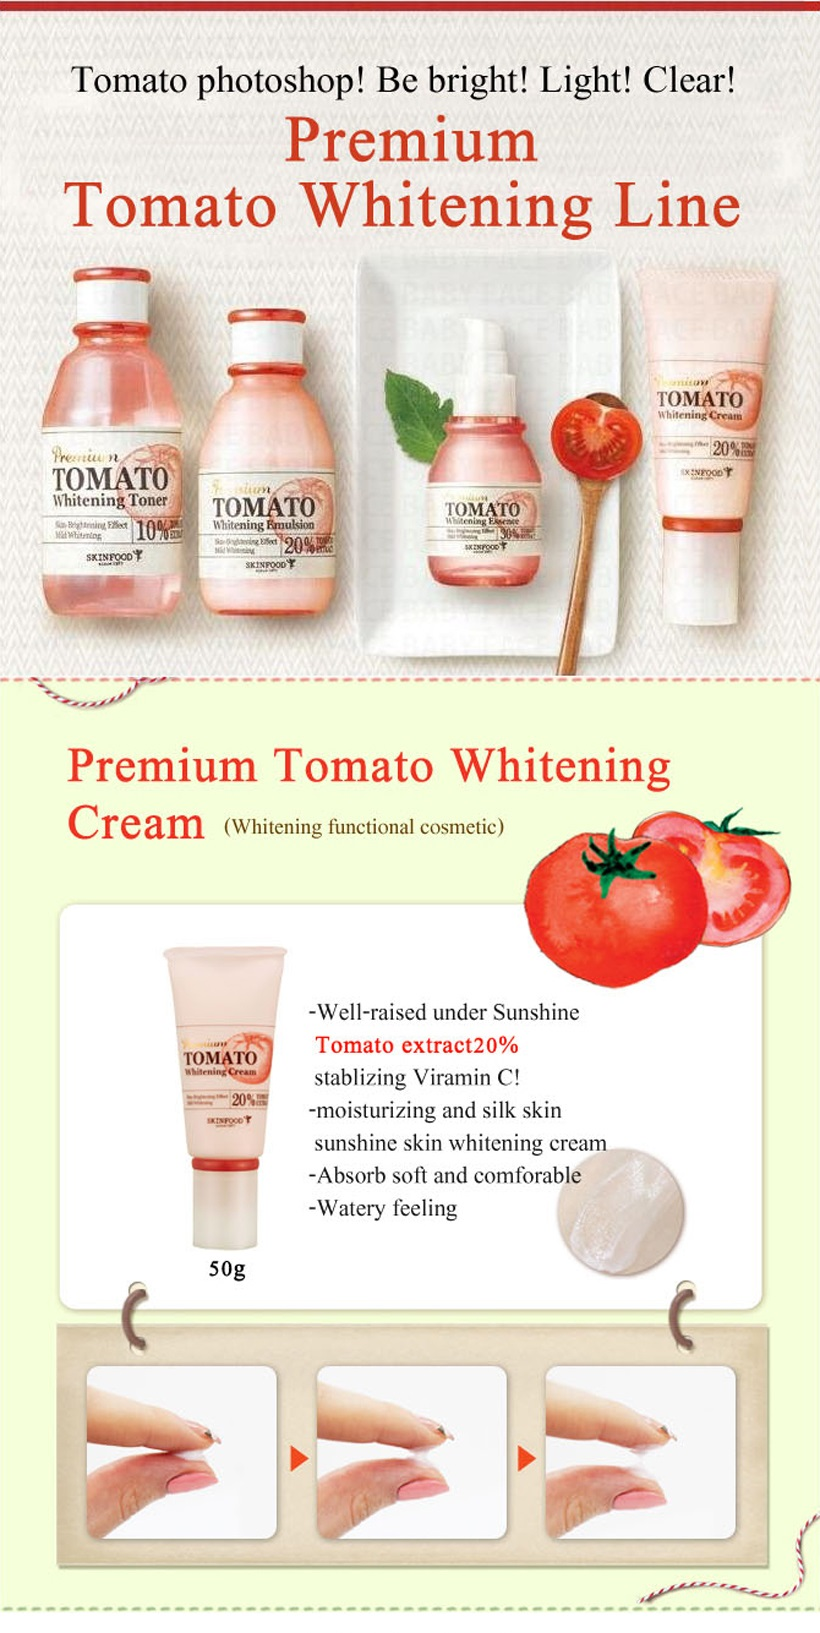 Skinfood Tomato Whitening Cream 50g